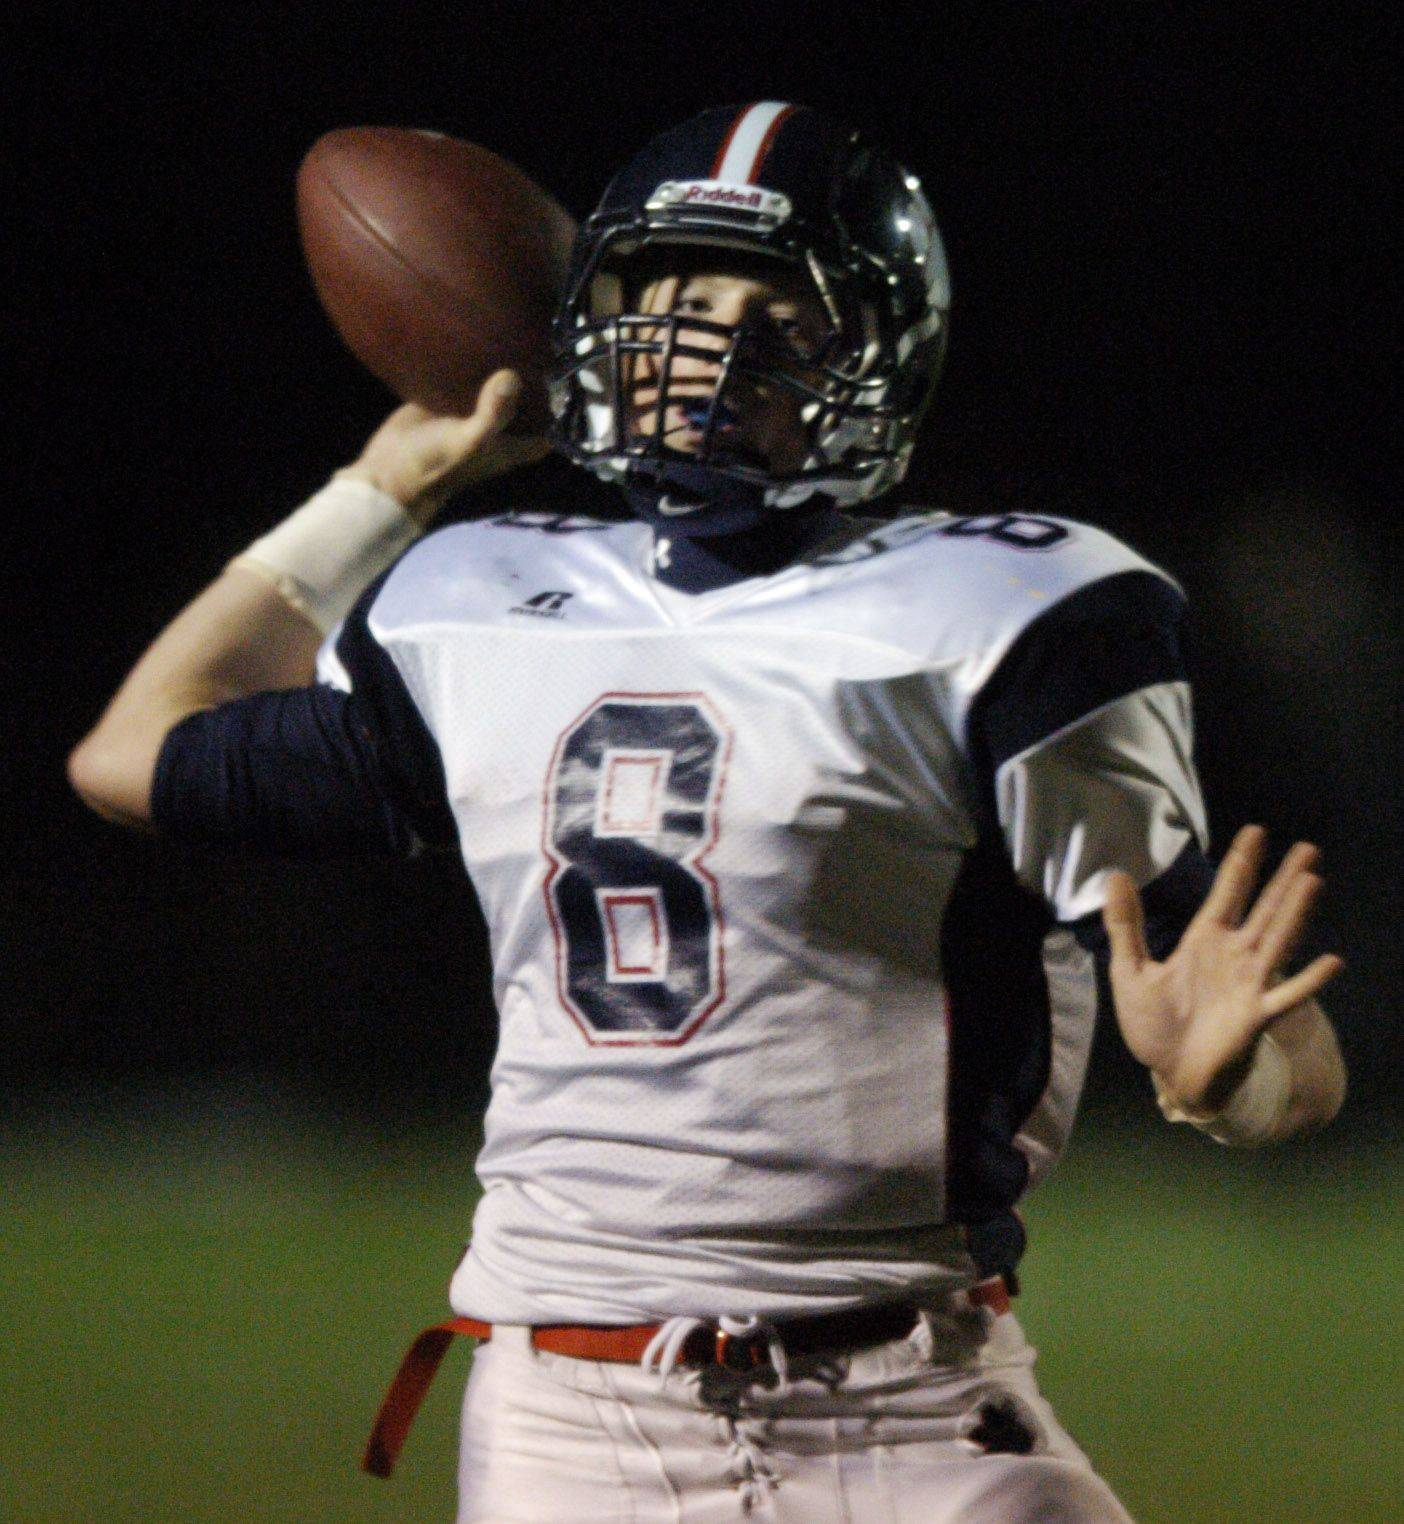 WEEK 9- Conant quarterback Matt Cullen throws a pass against Fremd.